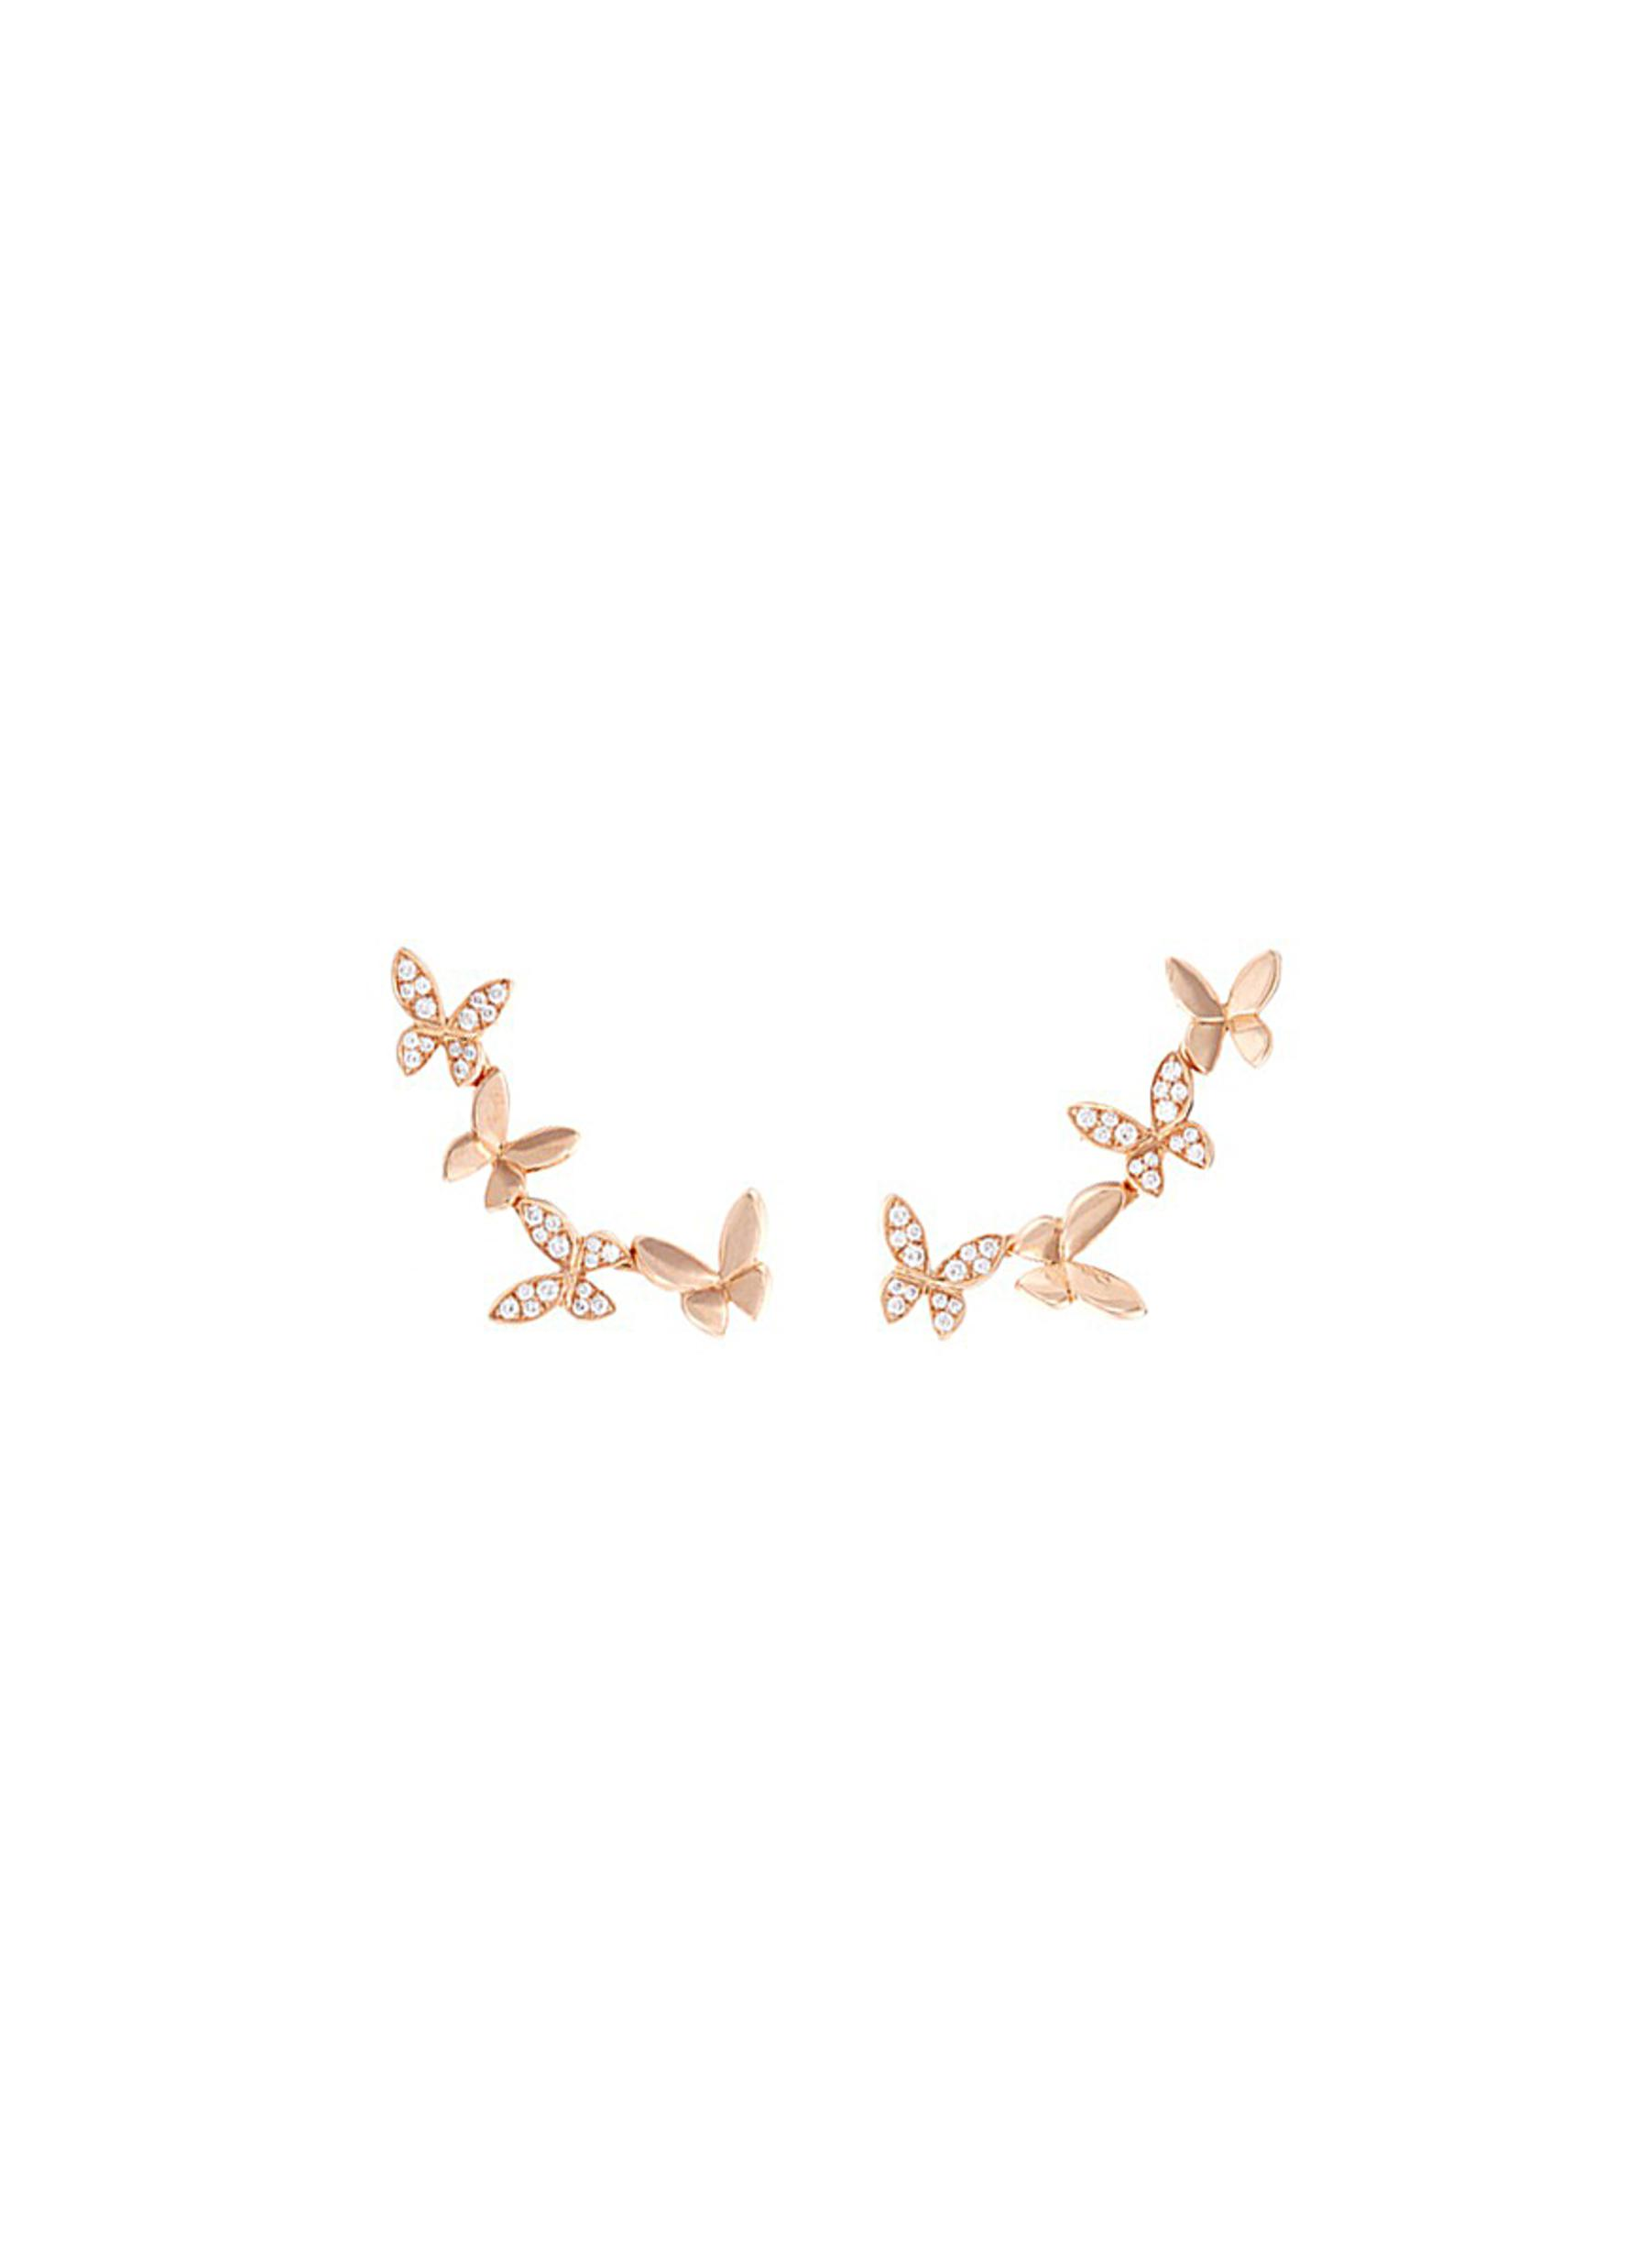 Small Butterfly diamond 18k rose gold climber earrings by Anyallerie